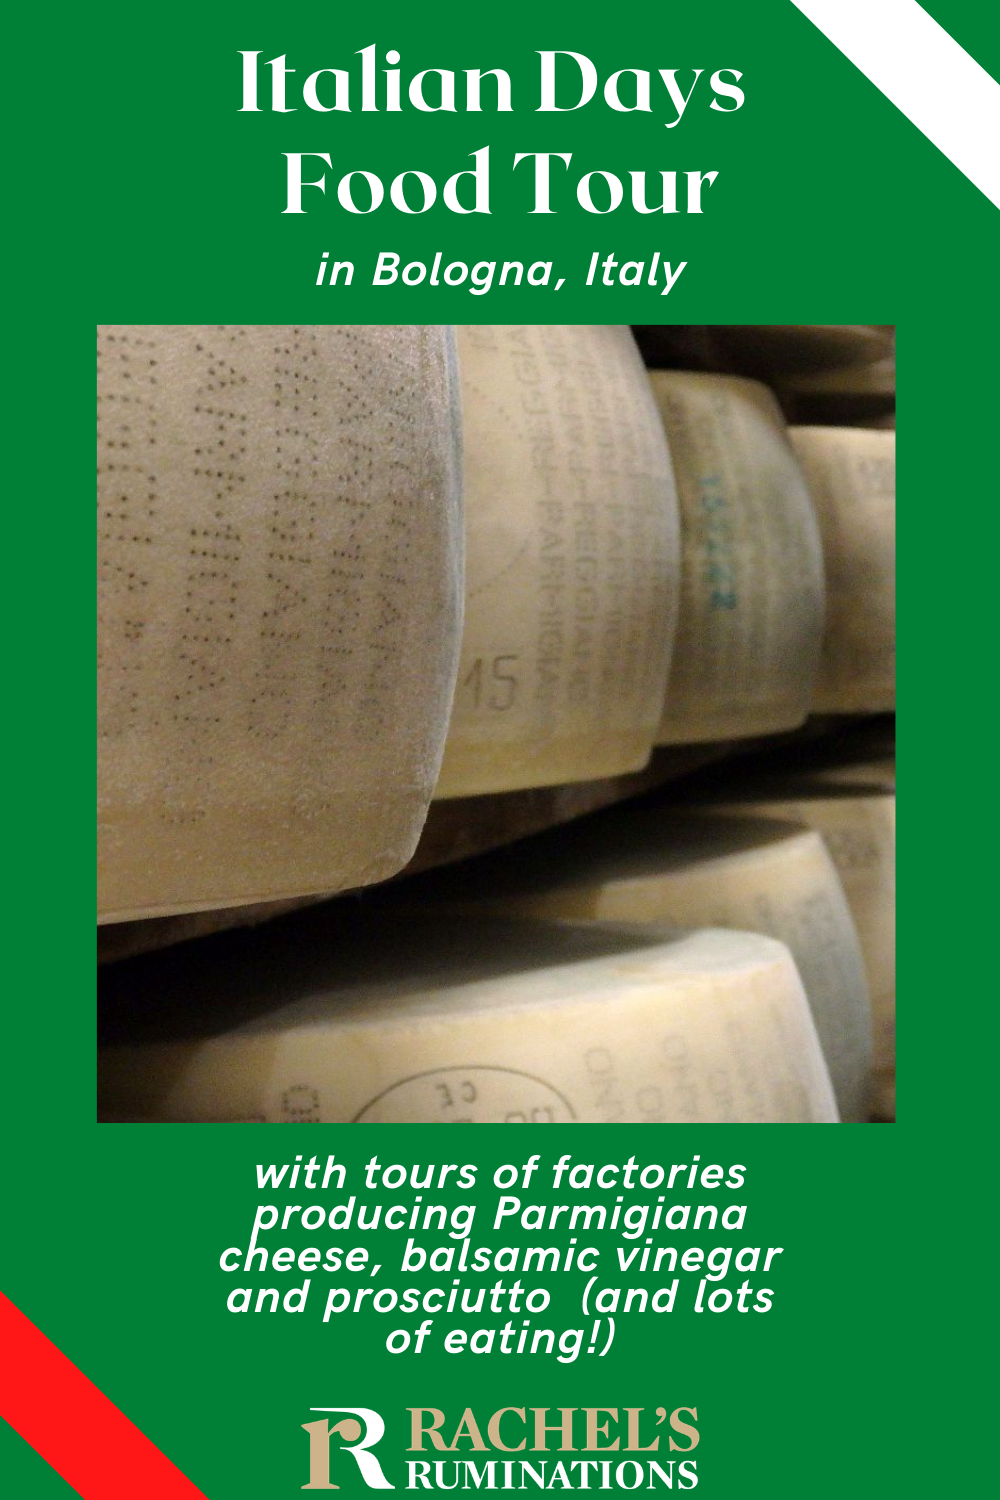 A review of Italian Days Food Tour in Bologna, Italy, with factory tours and tastings of parmigiano cheese, balsamic vinegar and prosciutto. Italian | ItalianDays | Bologna | Italy | foodie | food tour | parmigiano | balsamic | prosciutto via @rachelsruminations